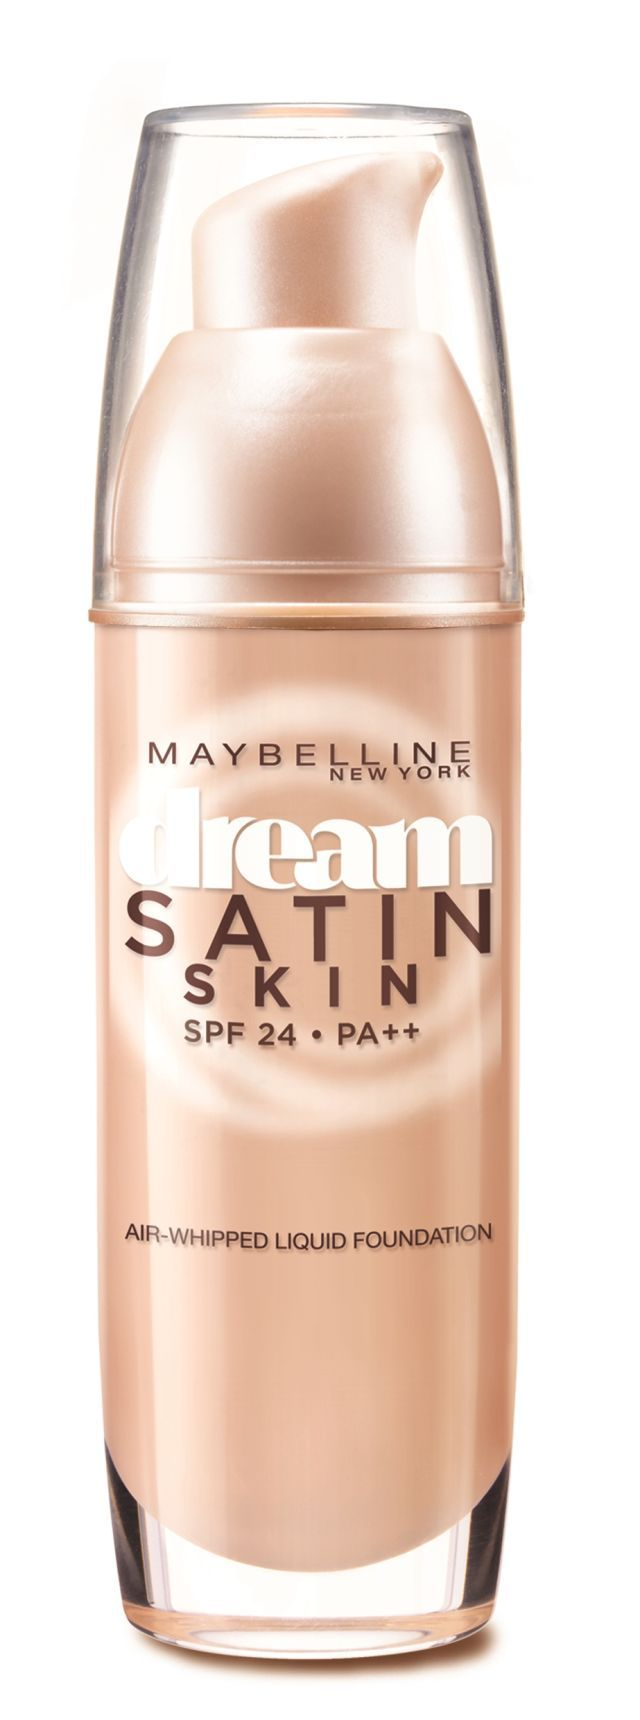 Maybelline Dream Satin Skin Whipped Liquid Foundation, INR 700  -cosmopolitan.in